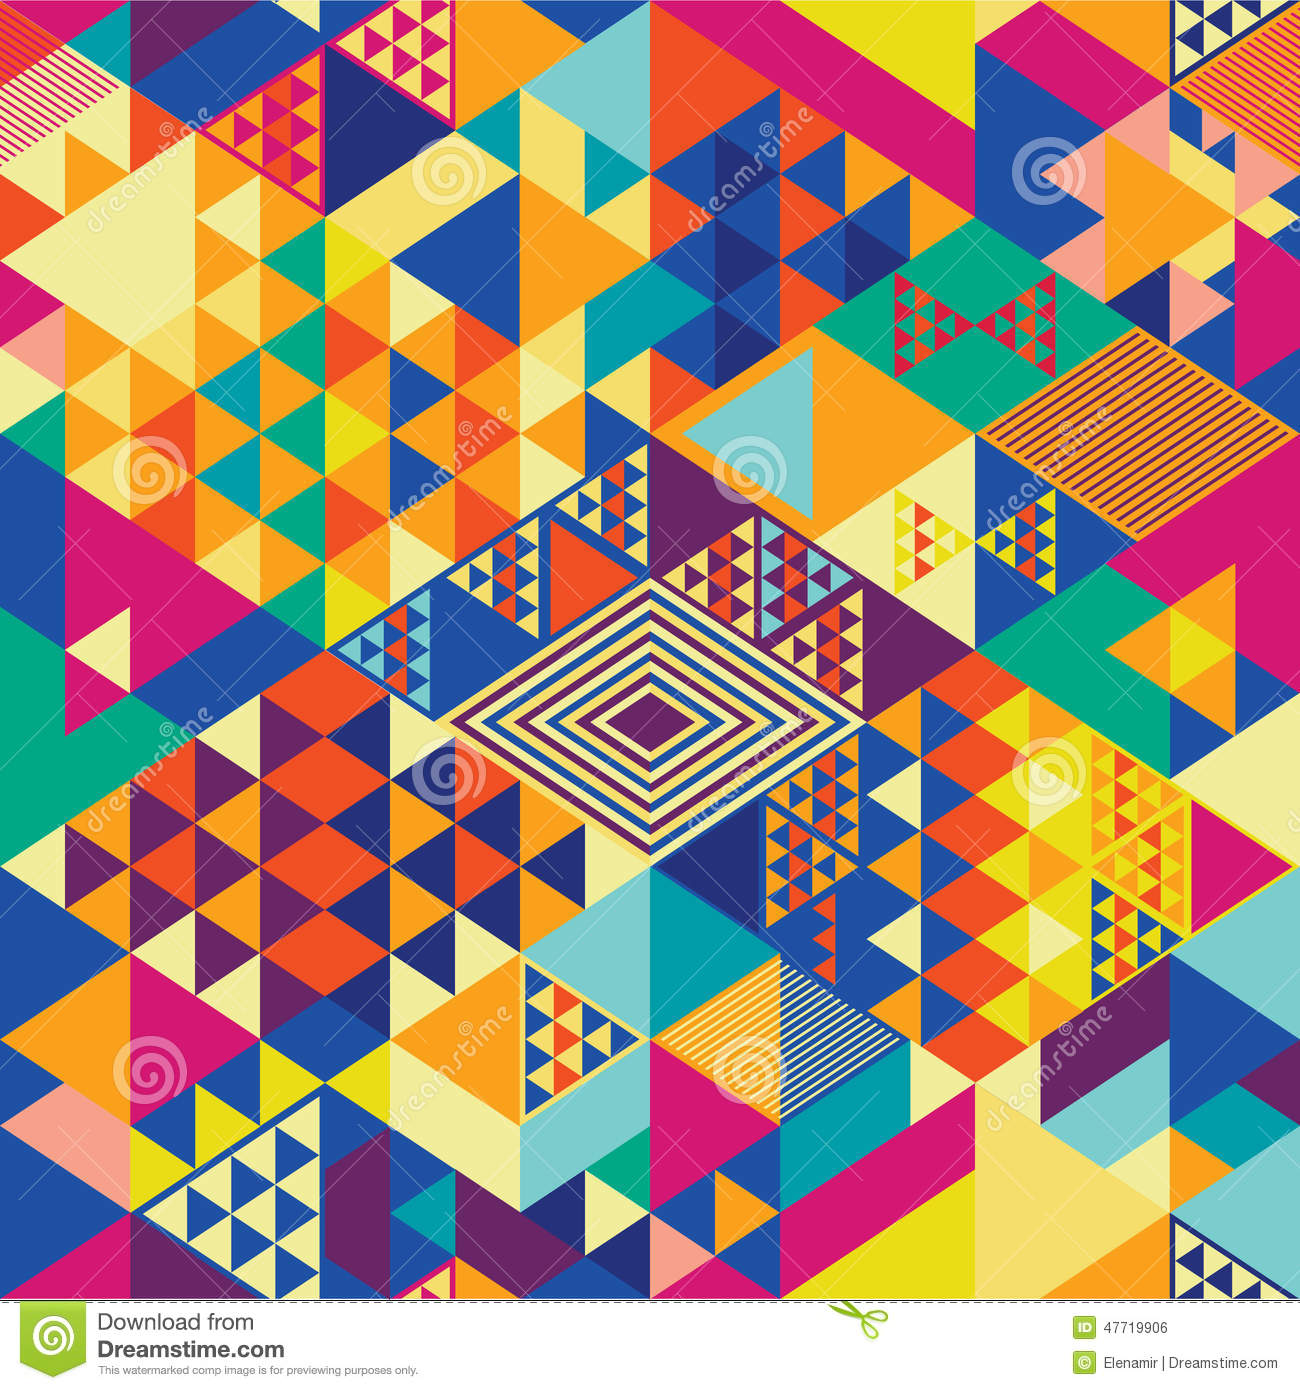 Geometric Pattern Pop Art Stock Vector - Image: 47719906